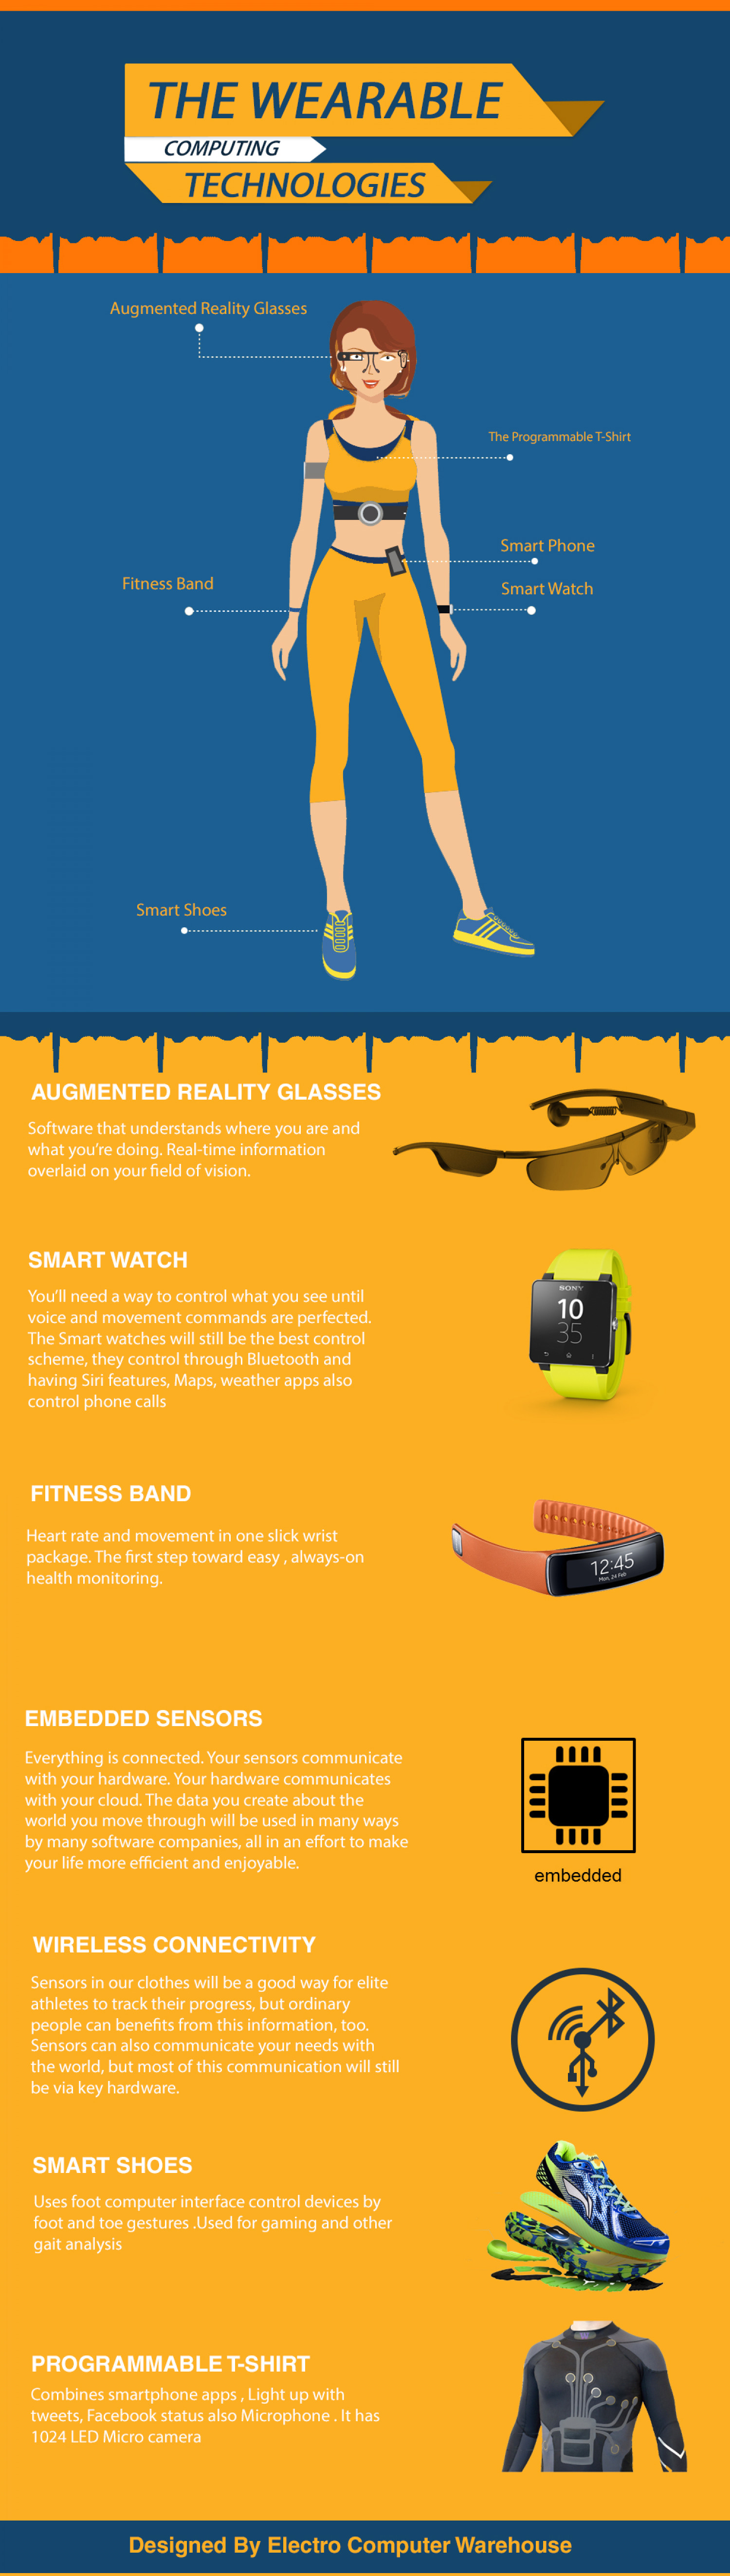 The Wearable Computing Technologies | Visual ly